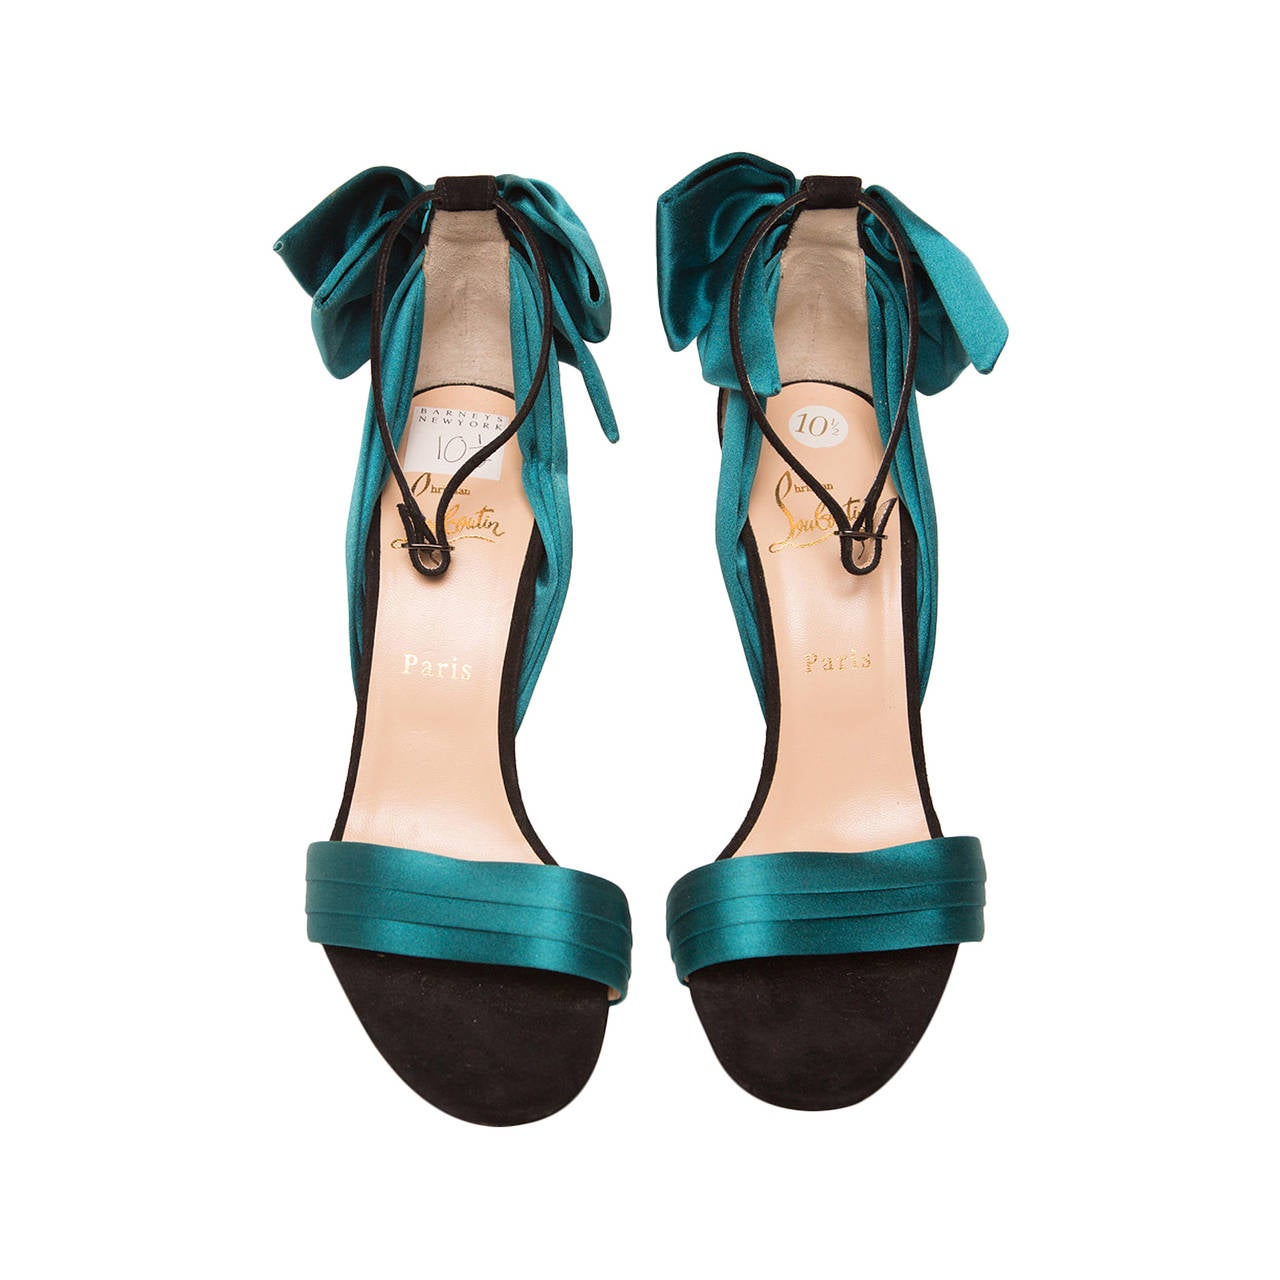 Christian Louboutin Teal High Heel Sandal 1